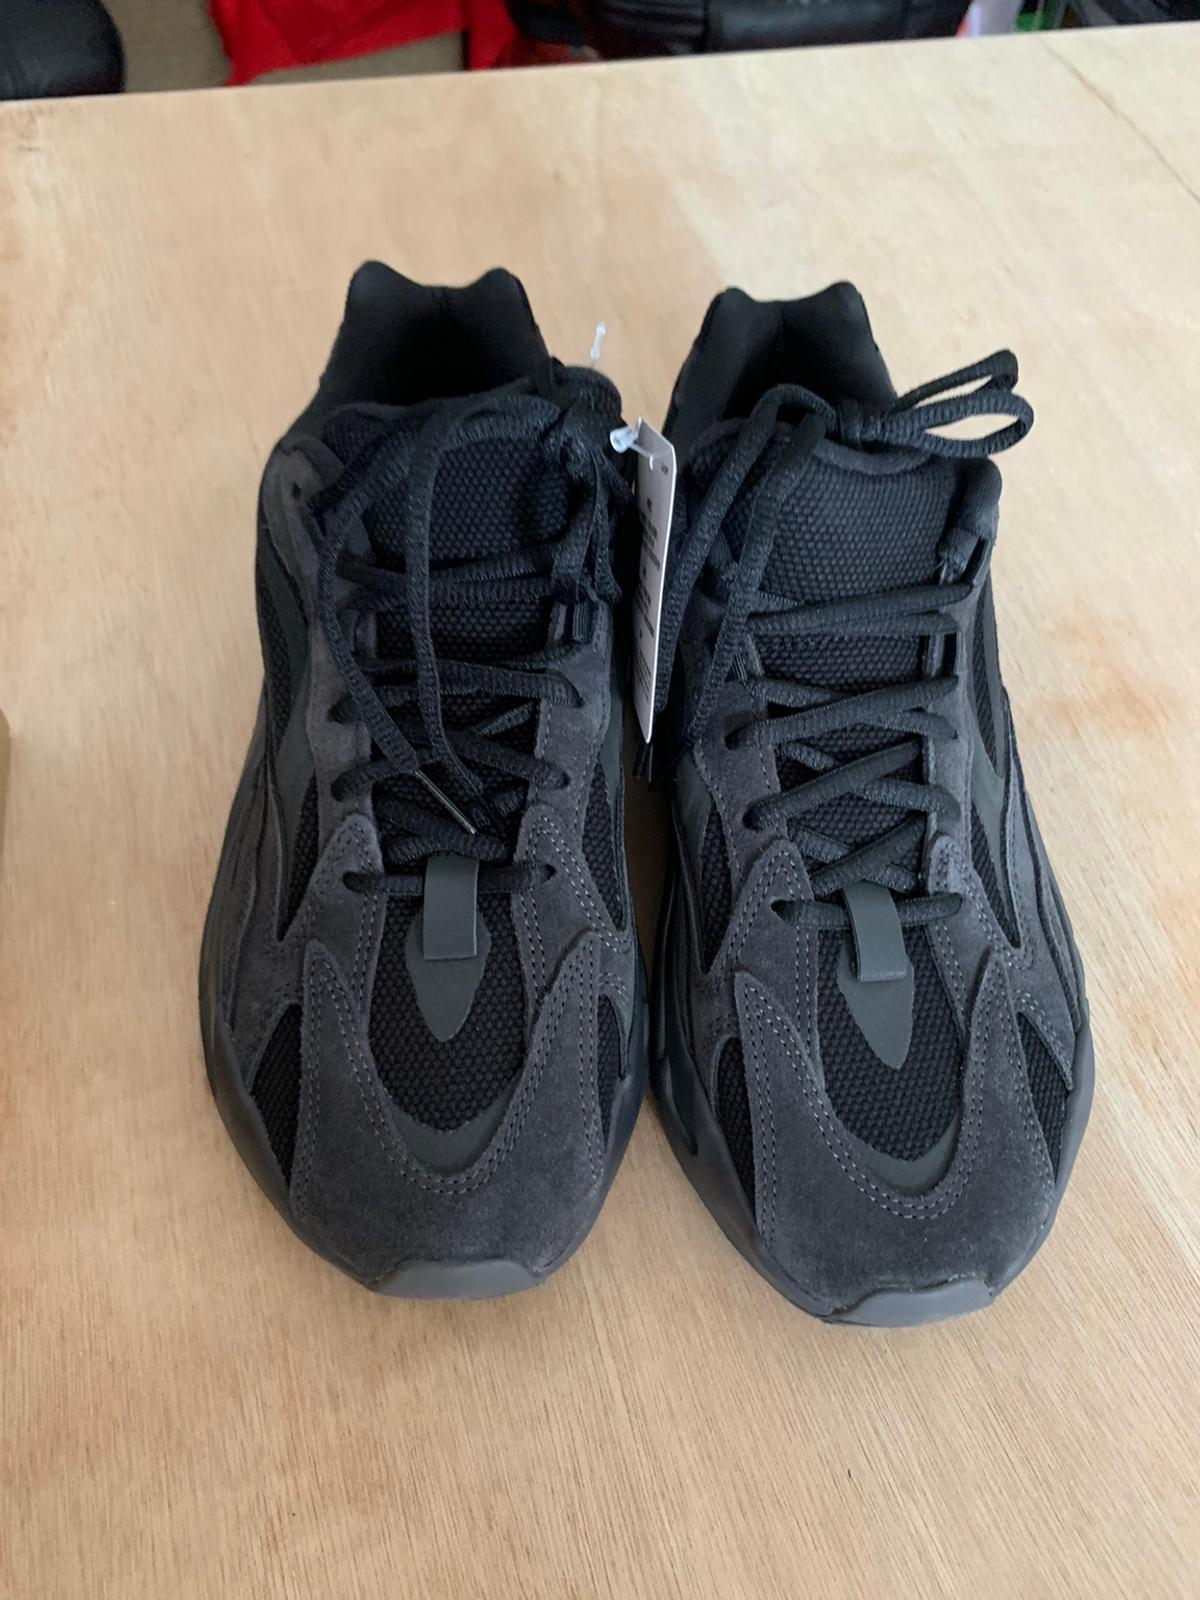 Brand new in box adidas yeezy 700 V2 in Vanta colour way. Uk 8. Further sizing details in photos. Email receipts from sneakersnstuff can be provided. Open to offers and any further questions let me know!